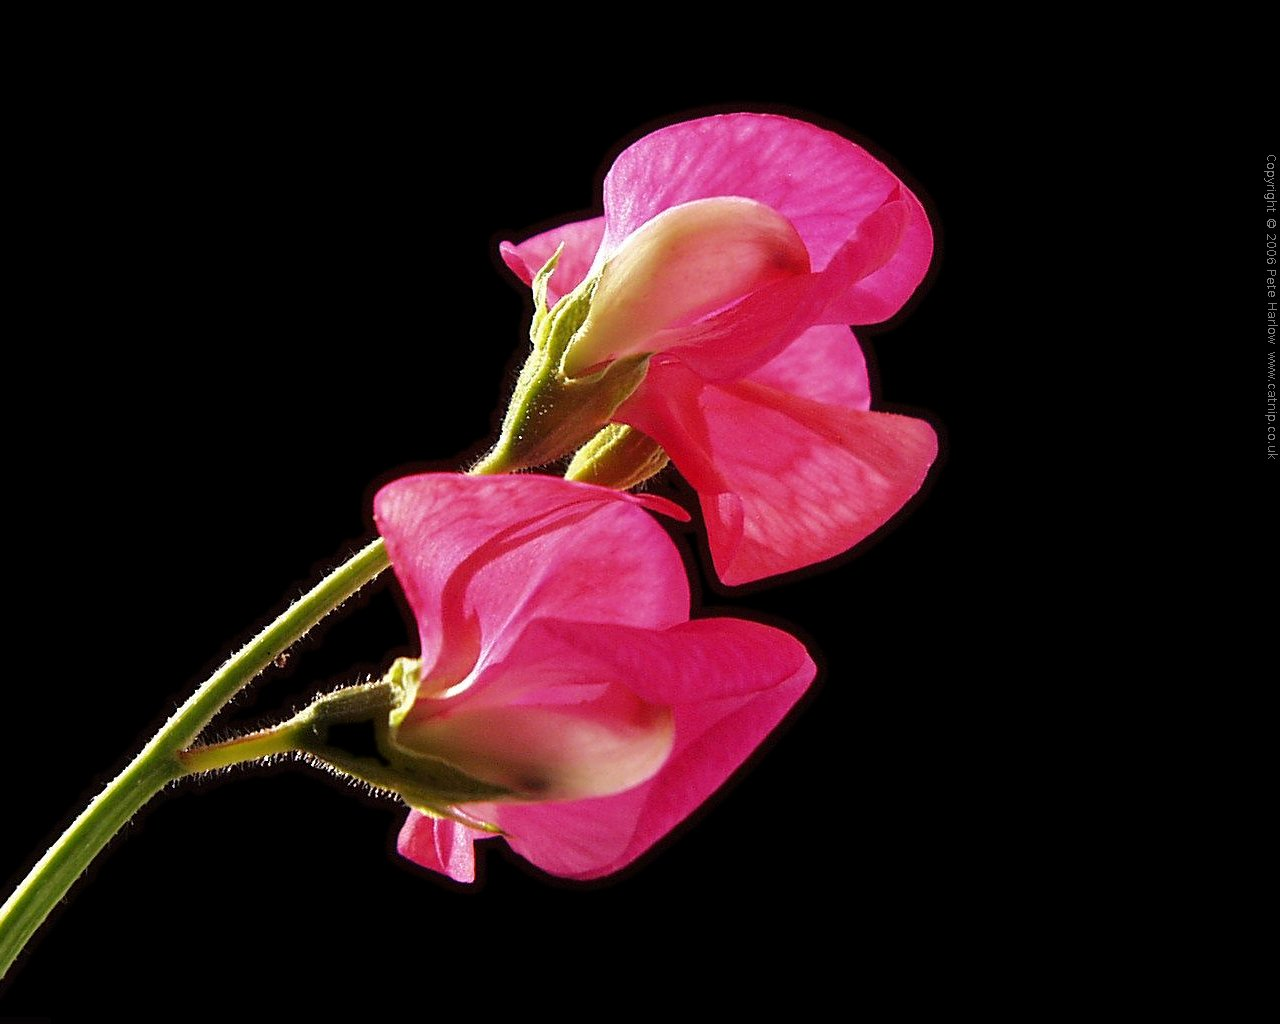 amazing flower: gladiolus flower wallpaper